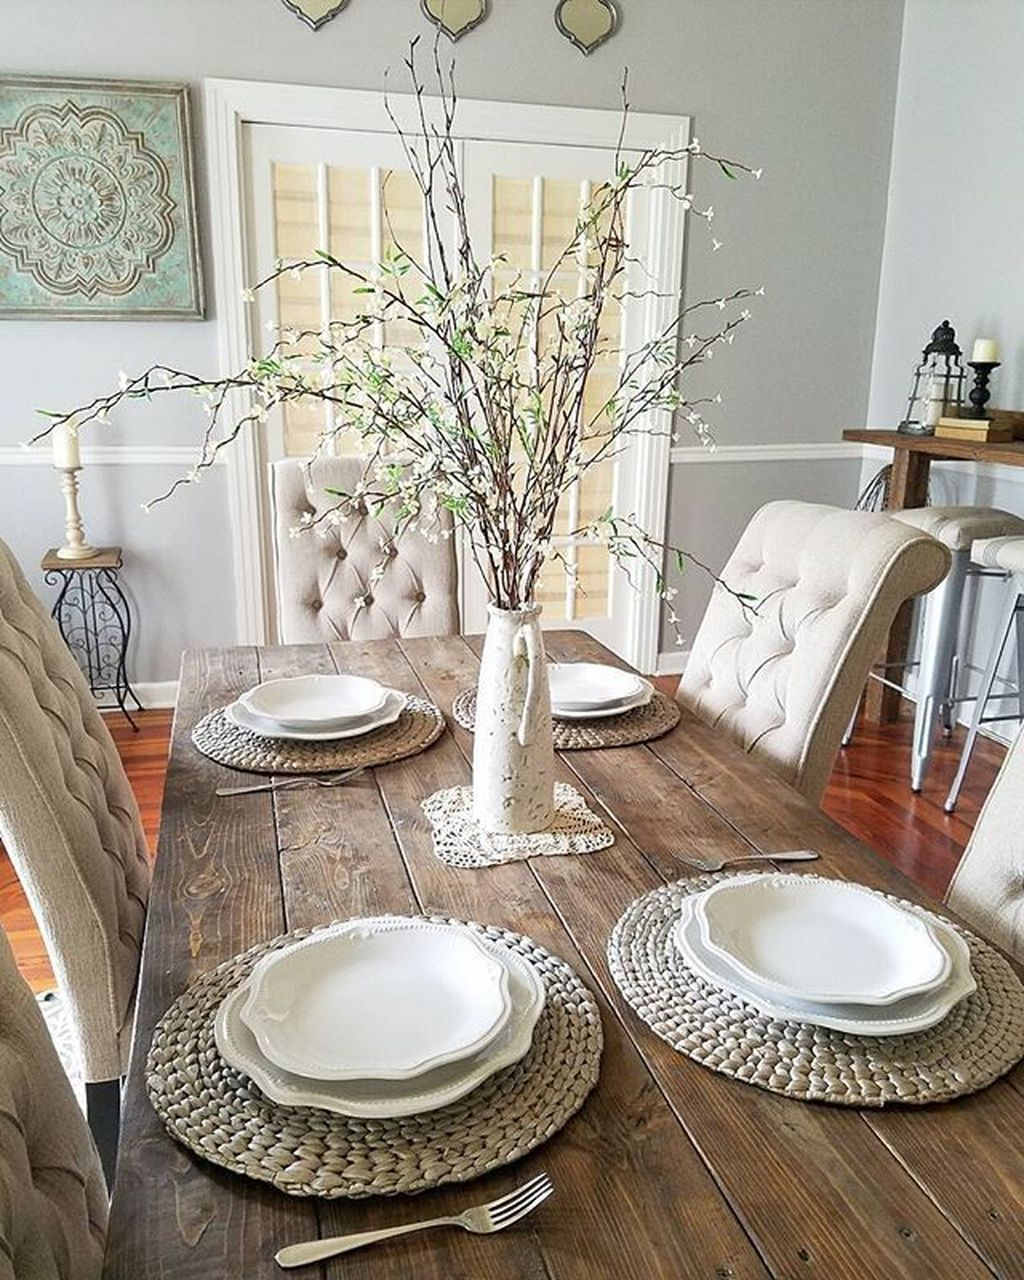 49 Awesome Modern Farmhouse Dining Room Design Ideas images